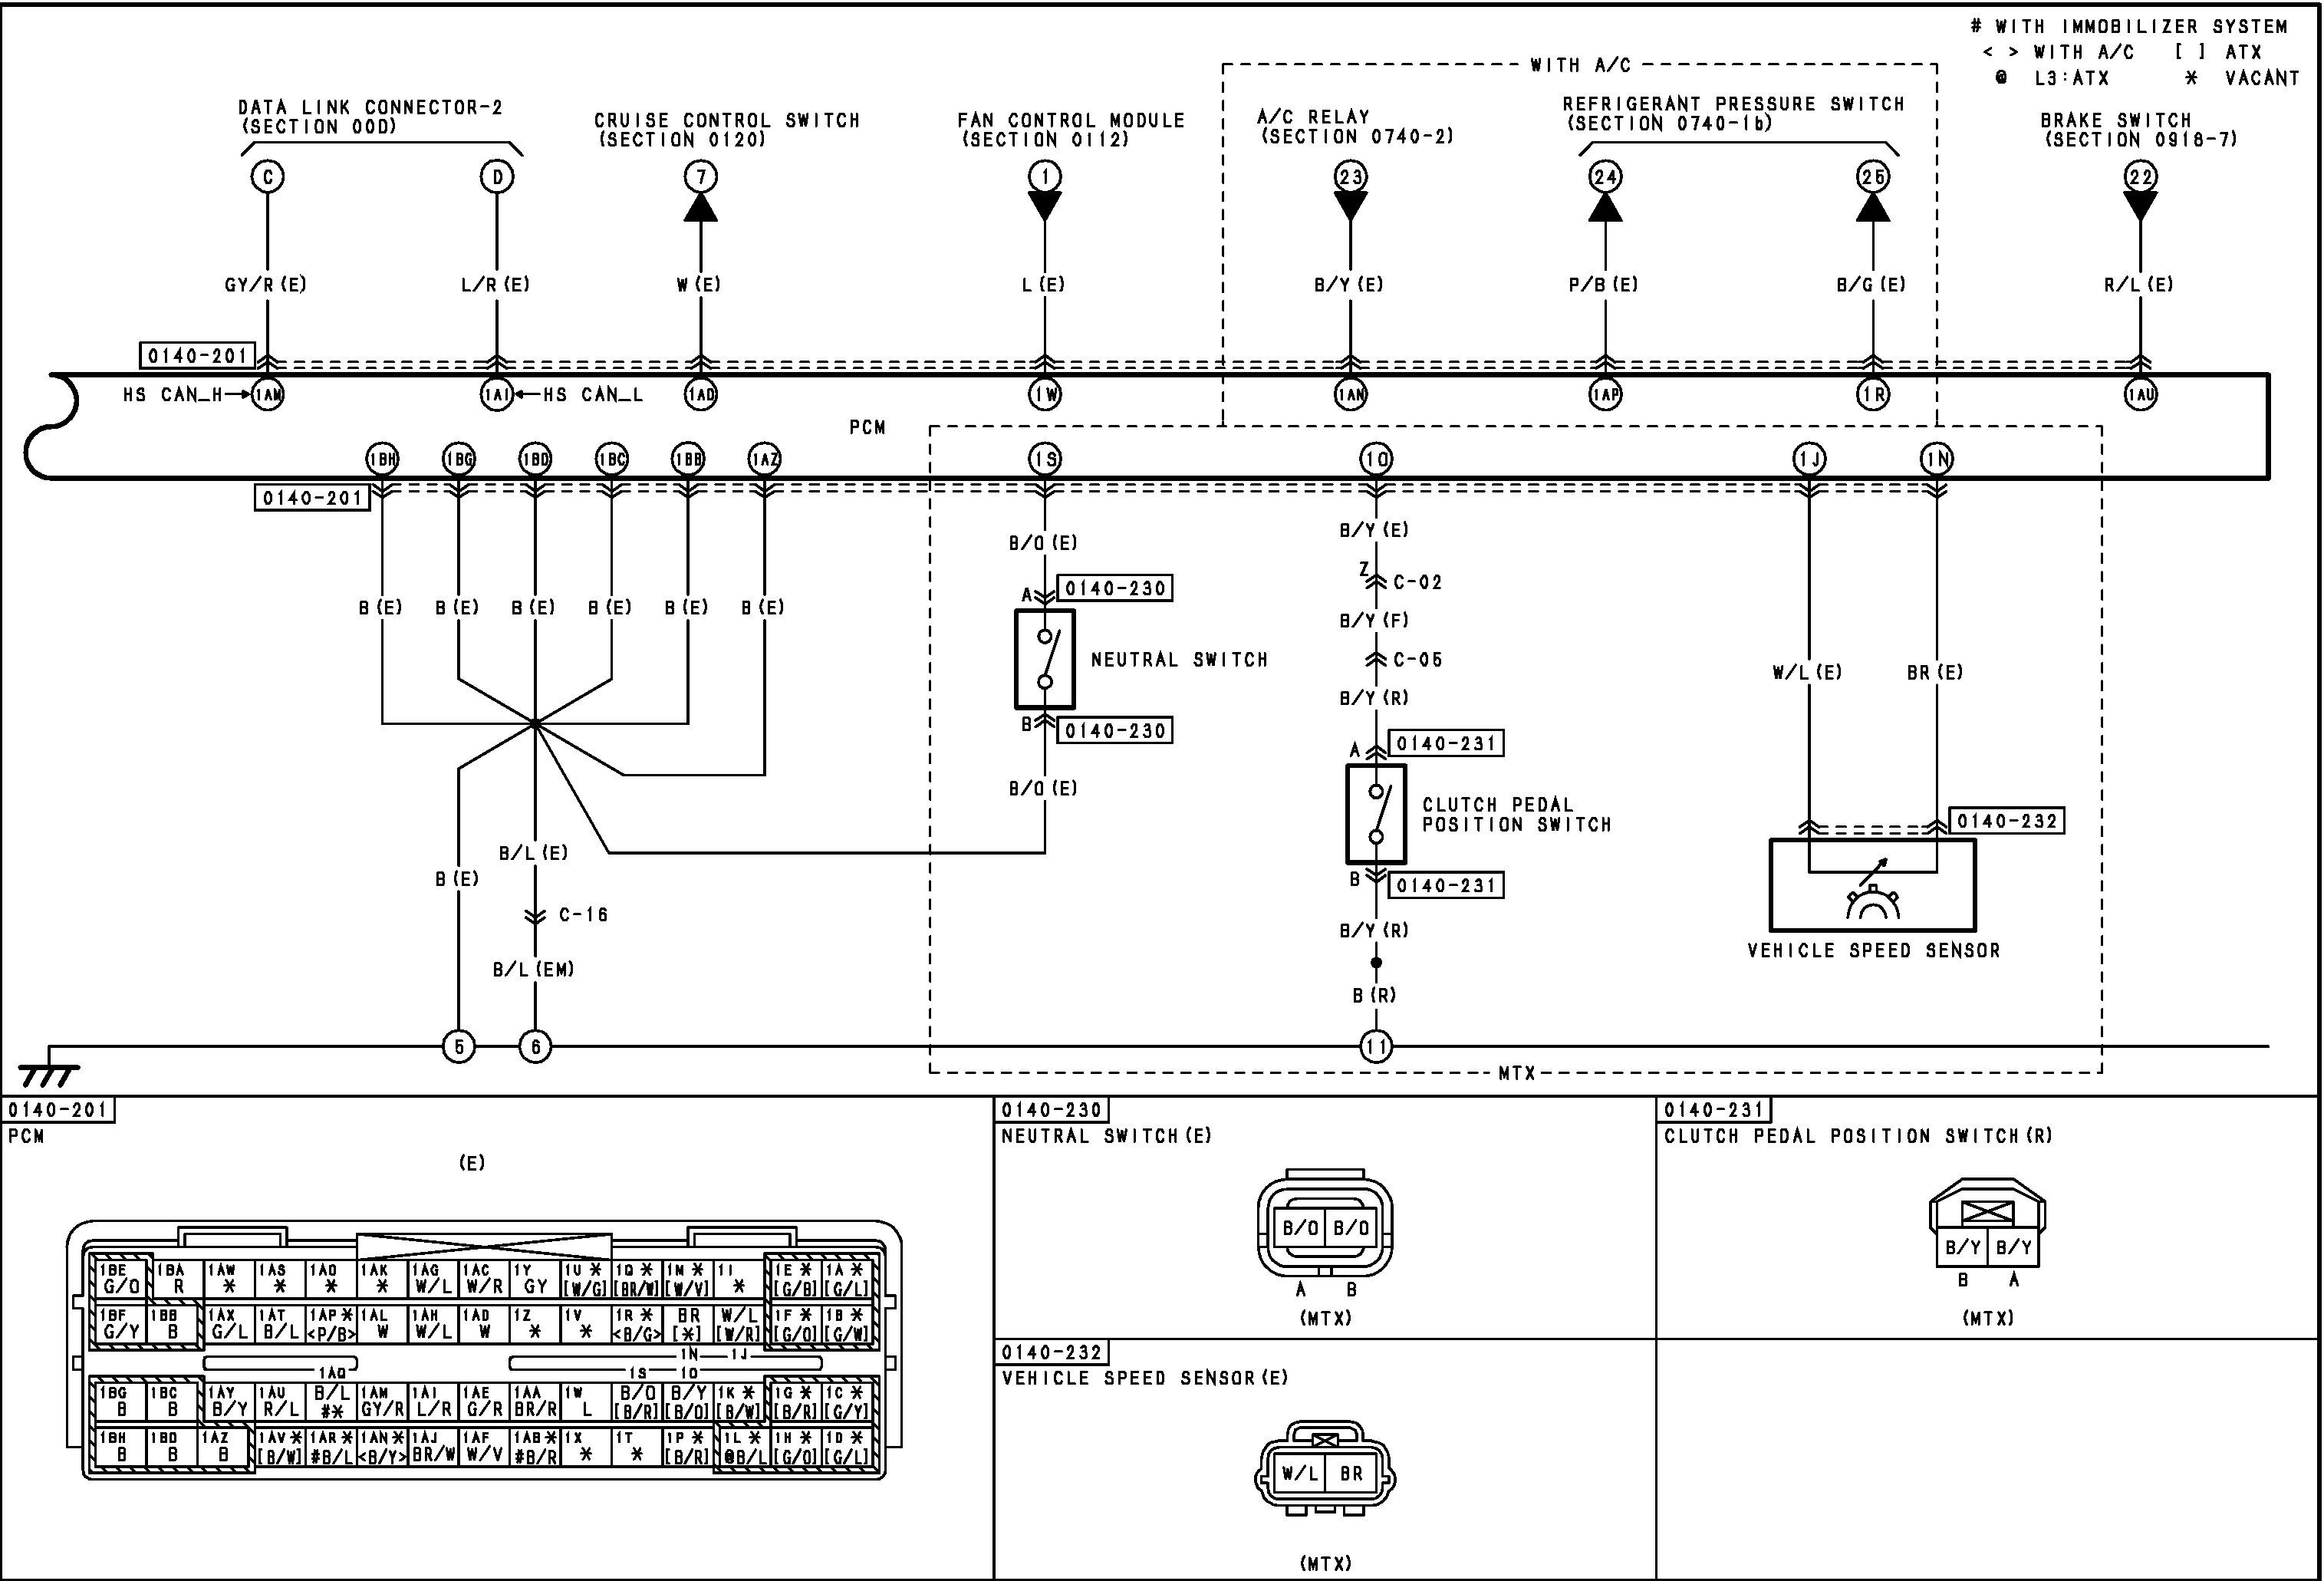 2006 mazda mpv wiring diagram 2006 automotive wiring diagrams mazda 3 wiring diagram radio mazda wiring diagrams